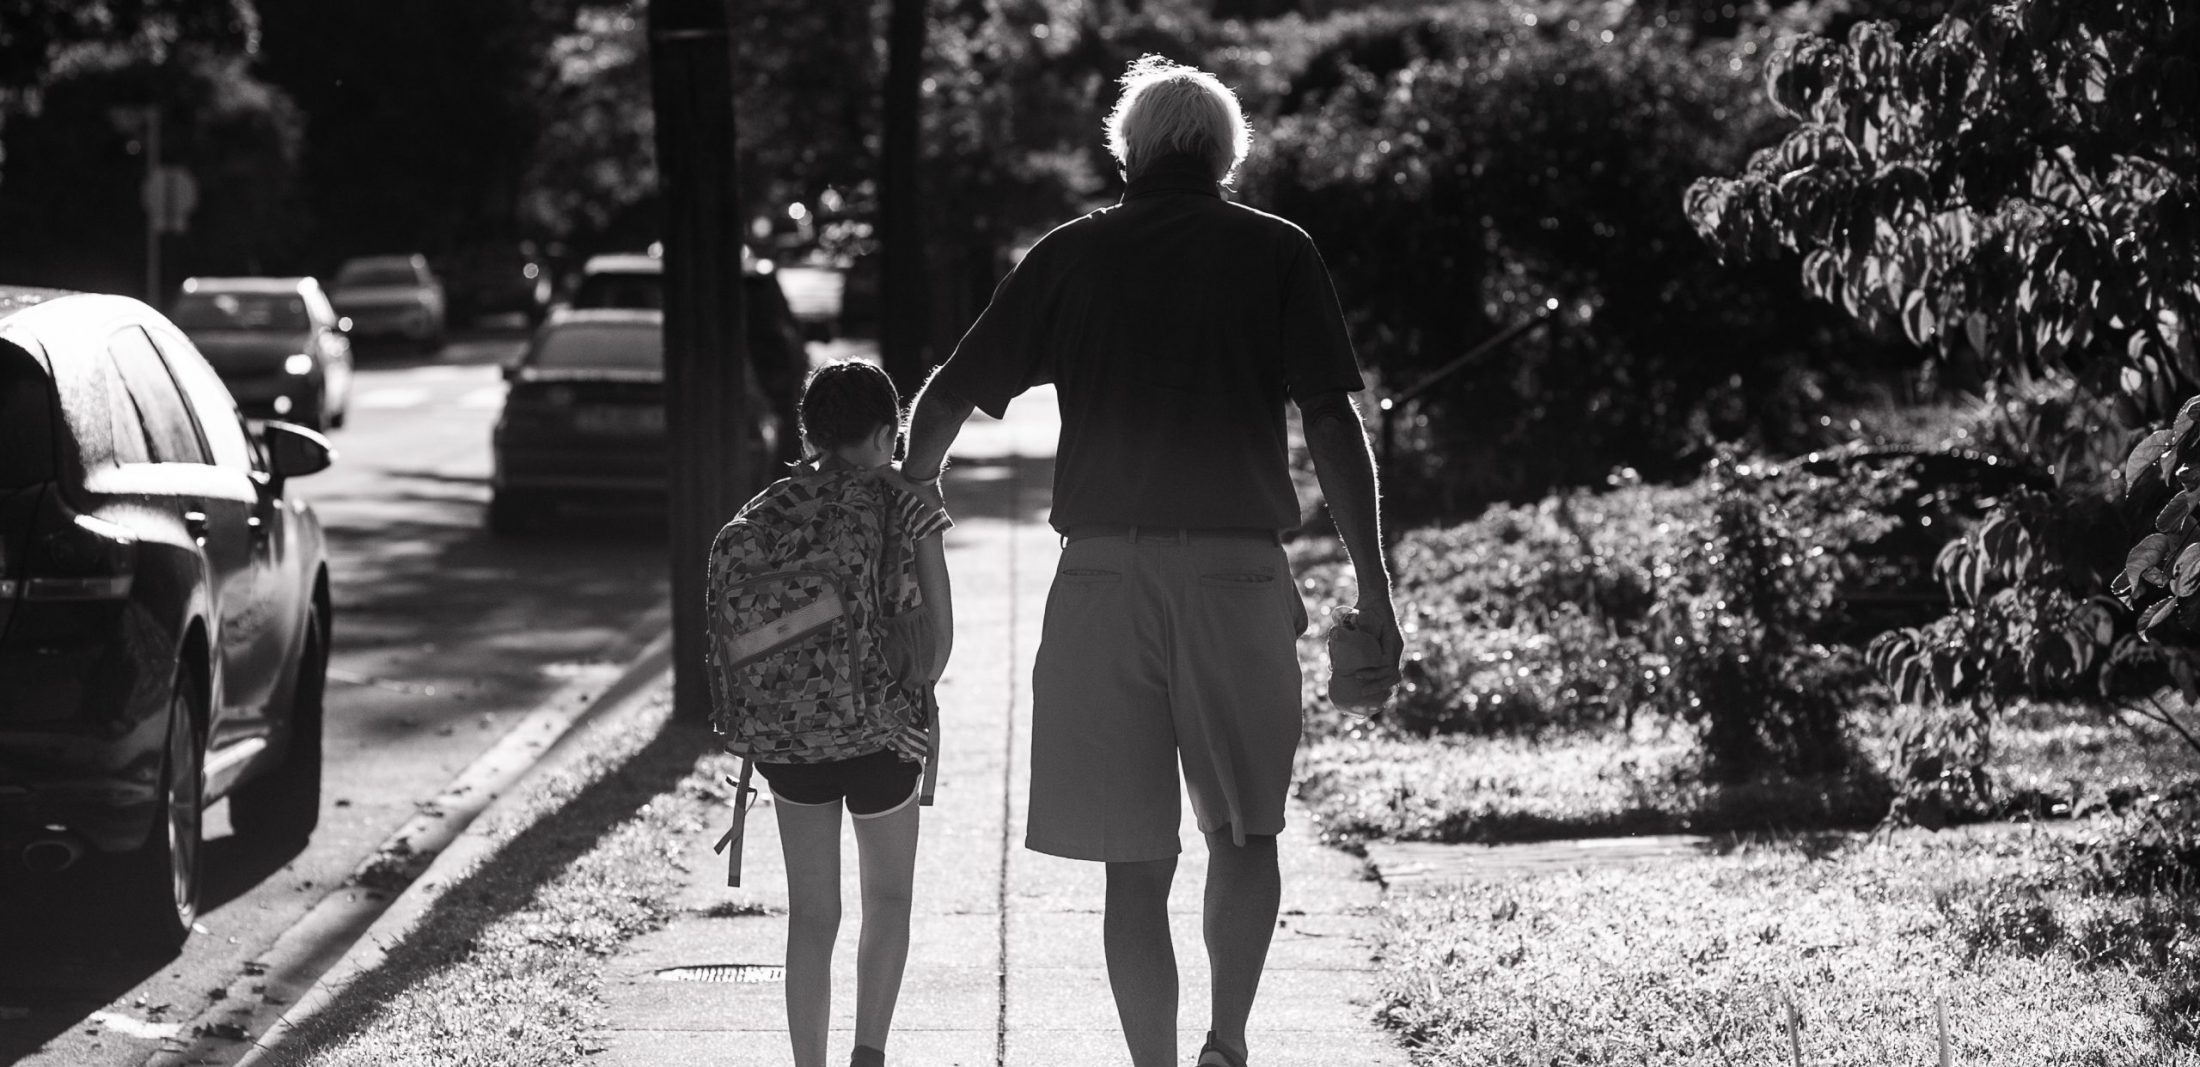 Father of DC widow blog writer Marjorie Brimley walks with granddaughter in black and white photo